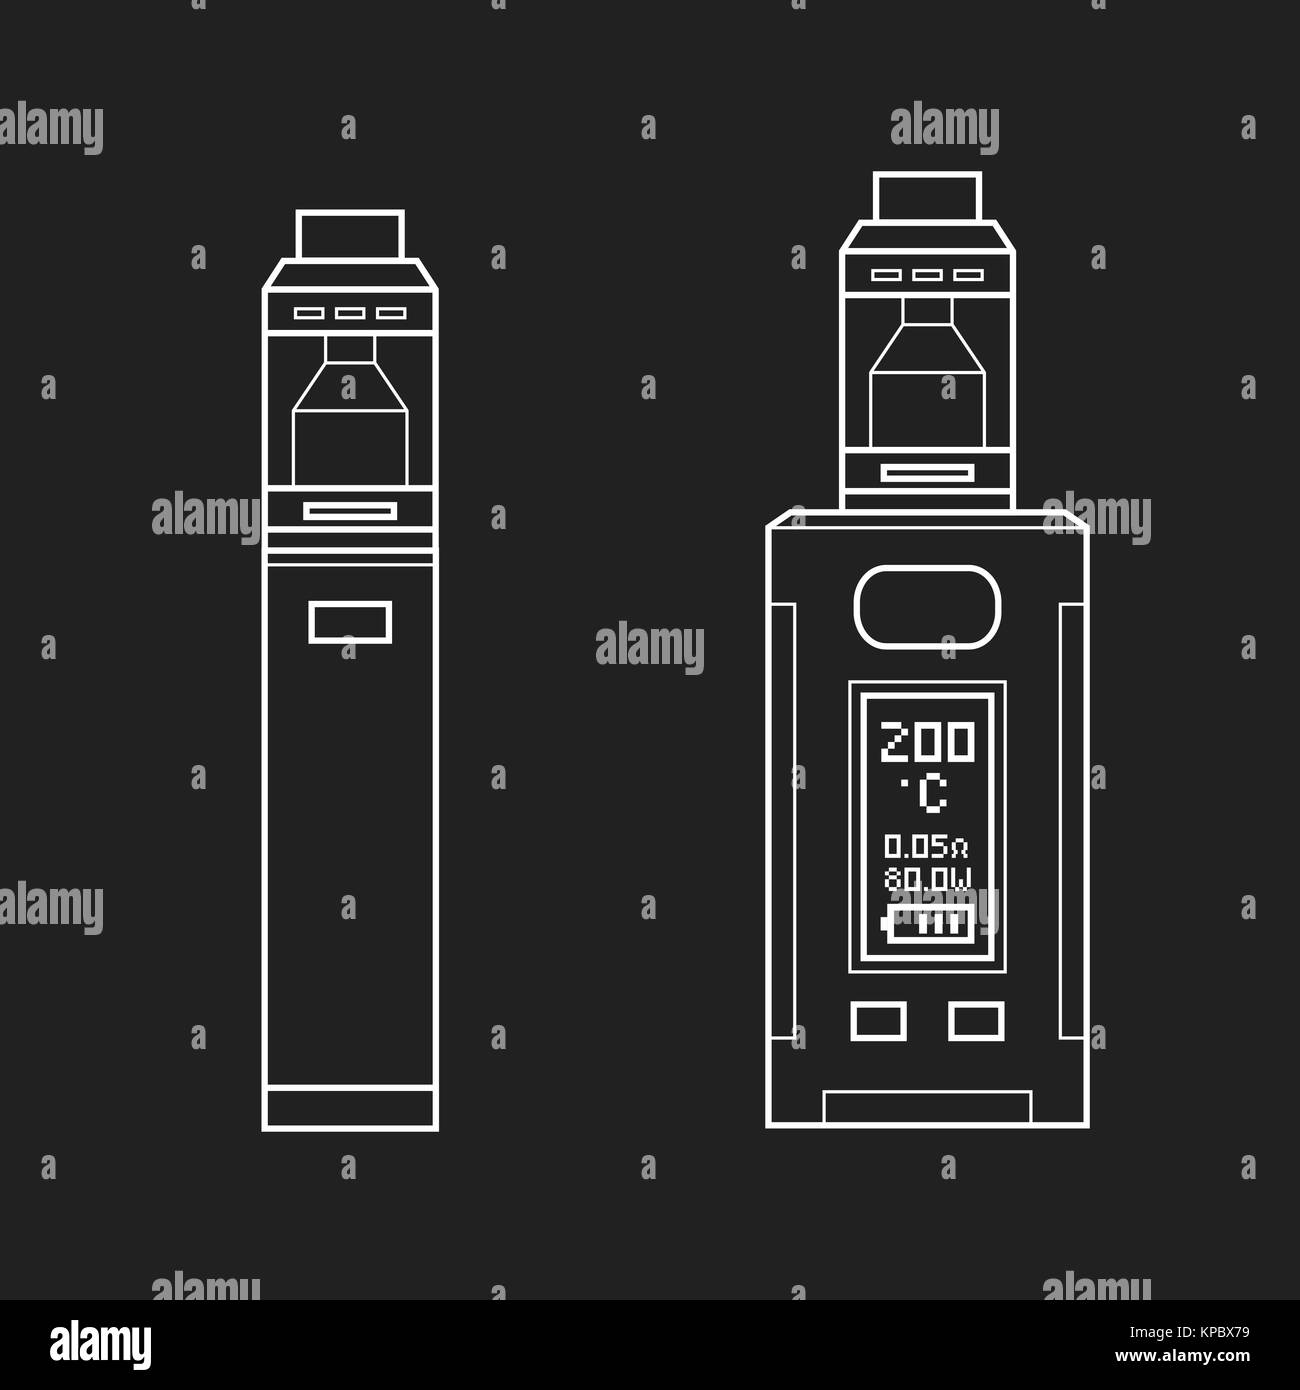 vector white monochrome outline illustrations various types vaporizer mechanical and box mods illustrations isolated Stock Vector